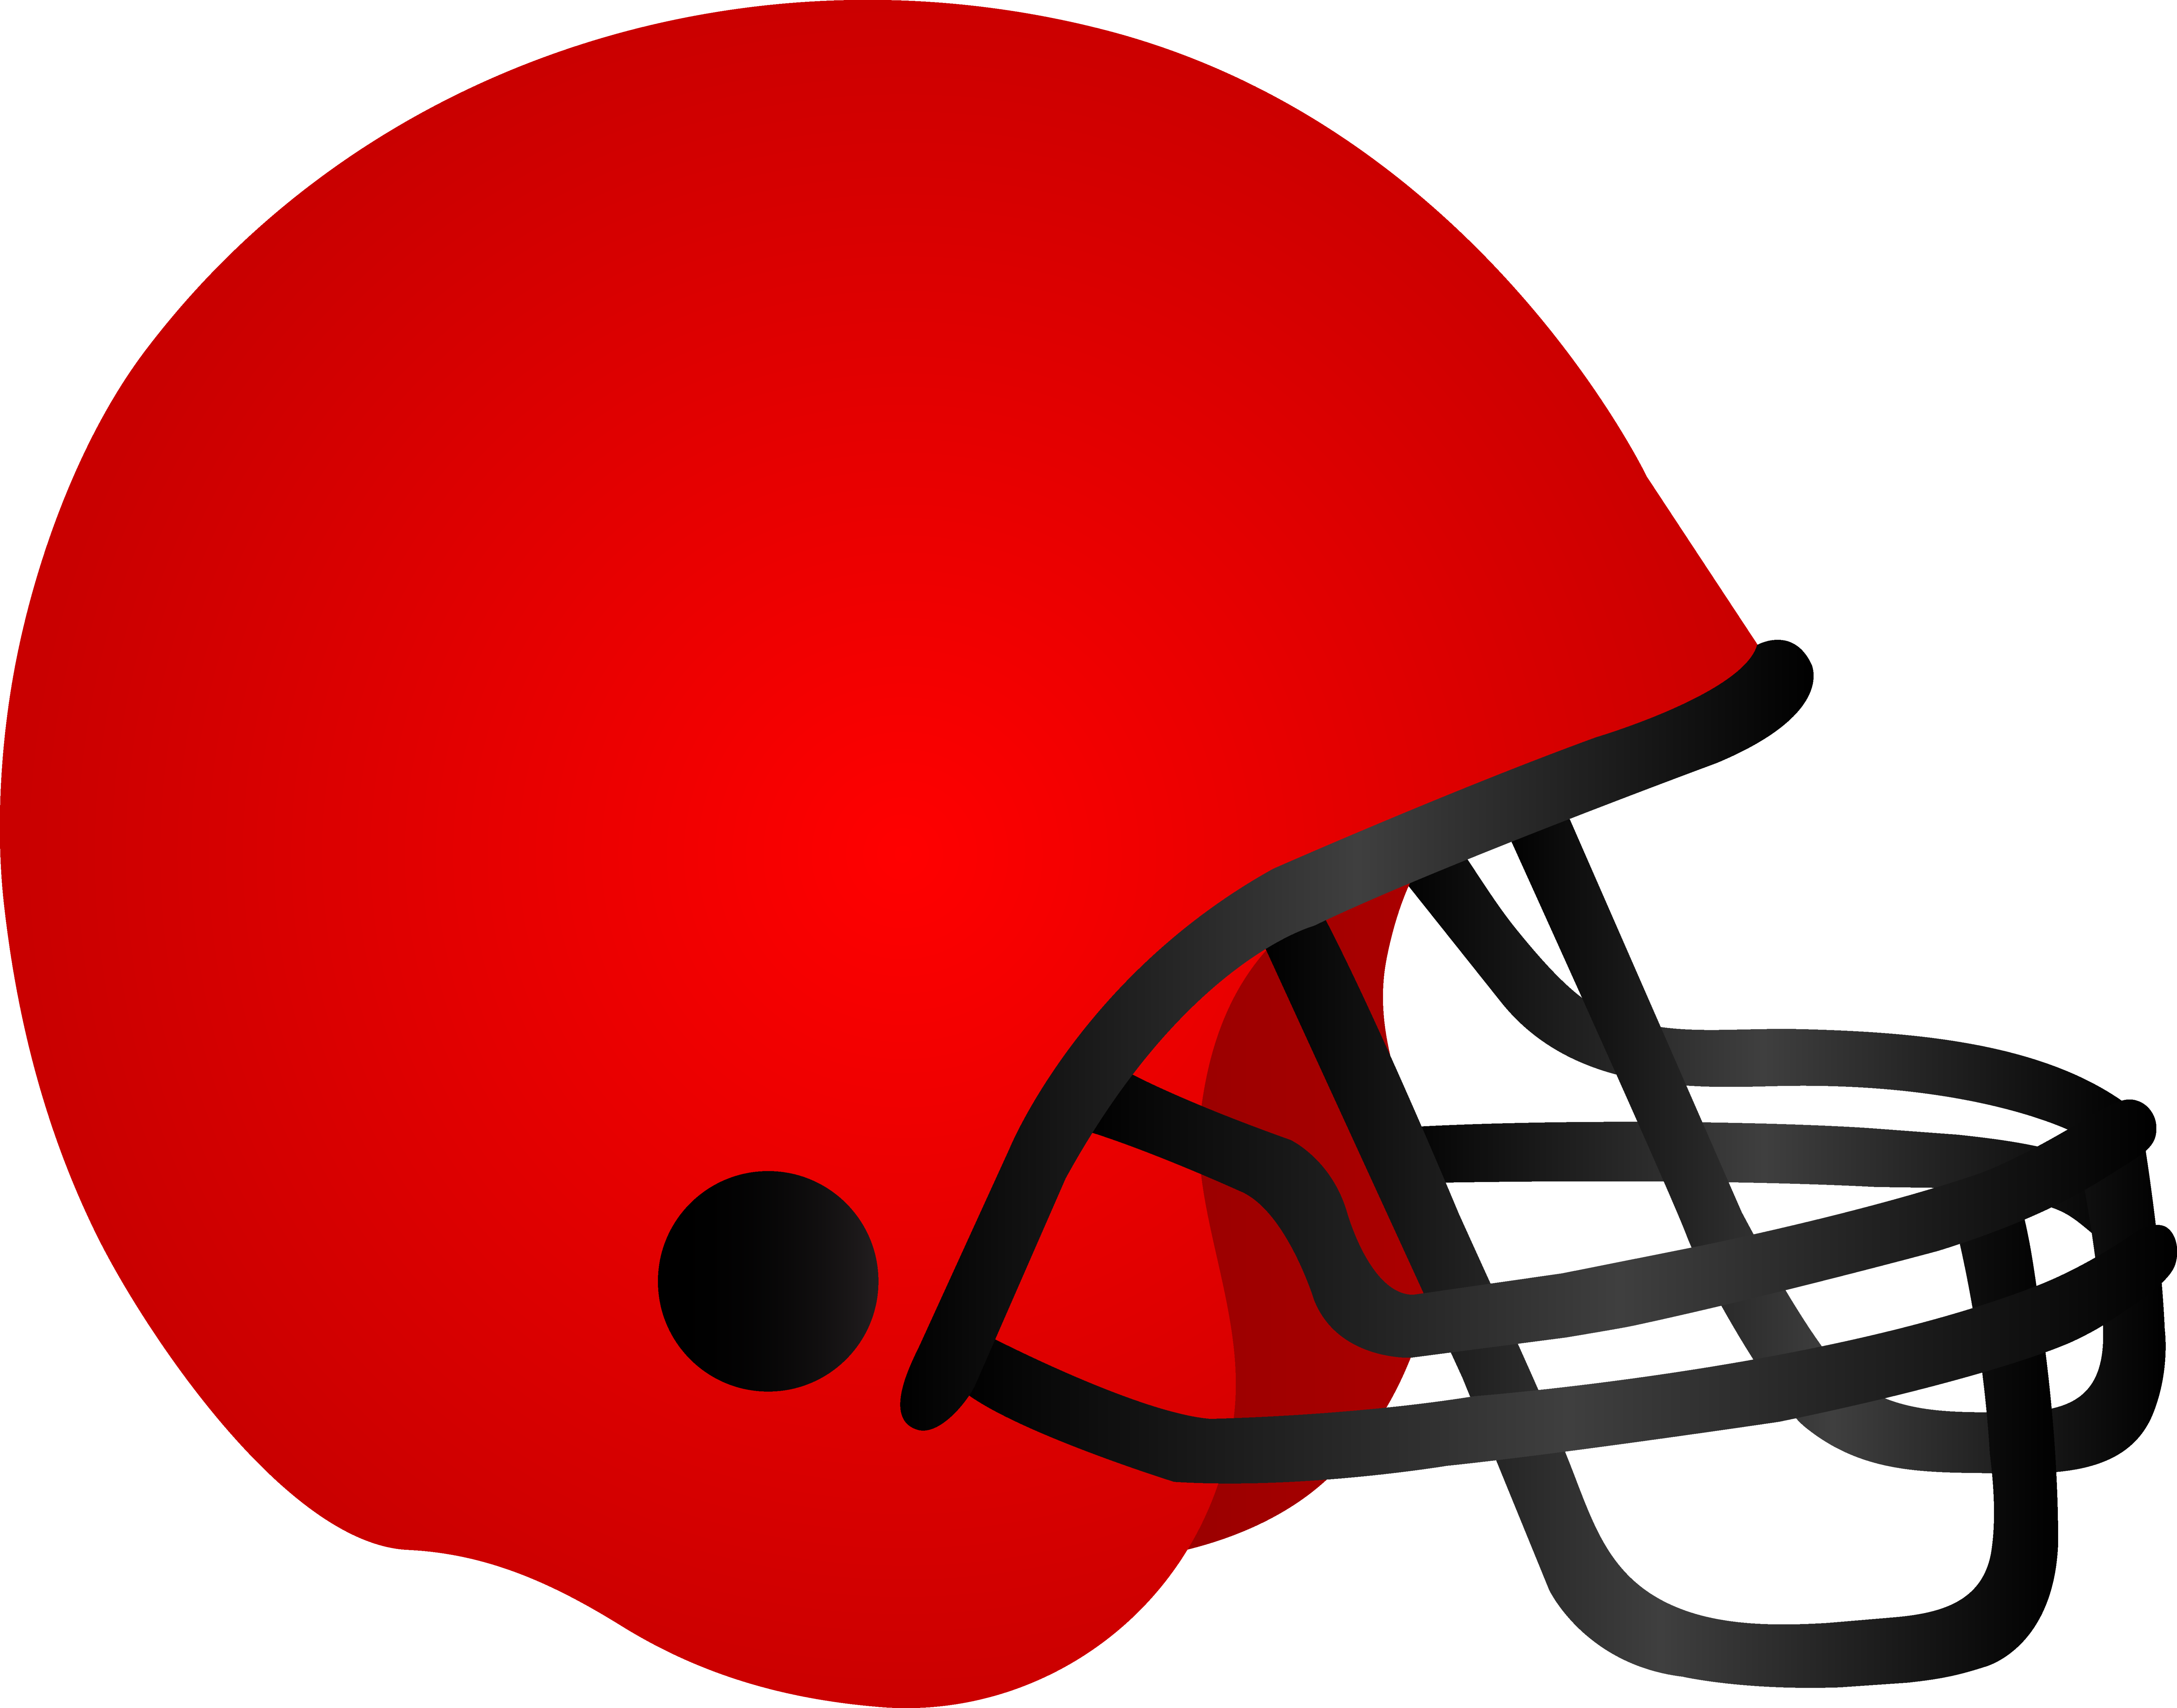 Football and cross clipart clip art transparent stock Football outline clipart red and blue clip art transparent stock